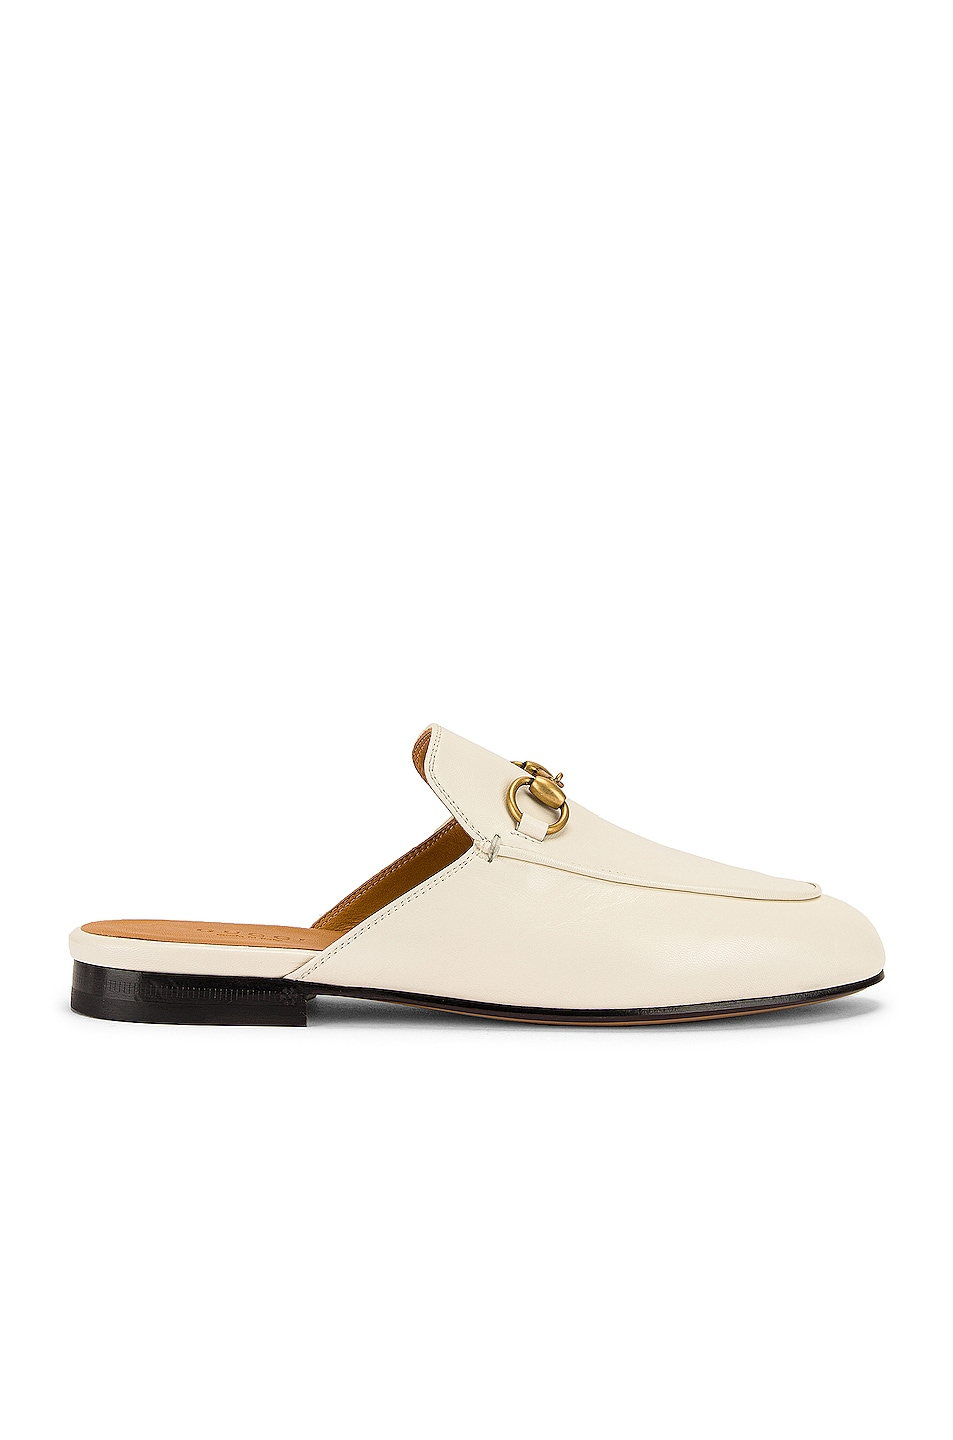 Image 1 of Gucci Princetown Slides in Mystic White